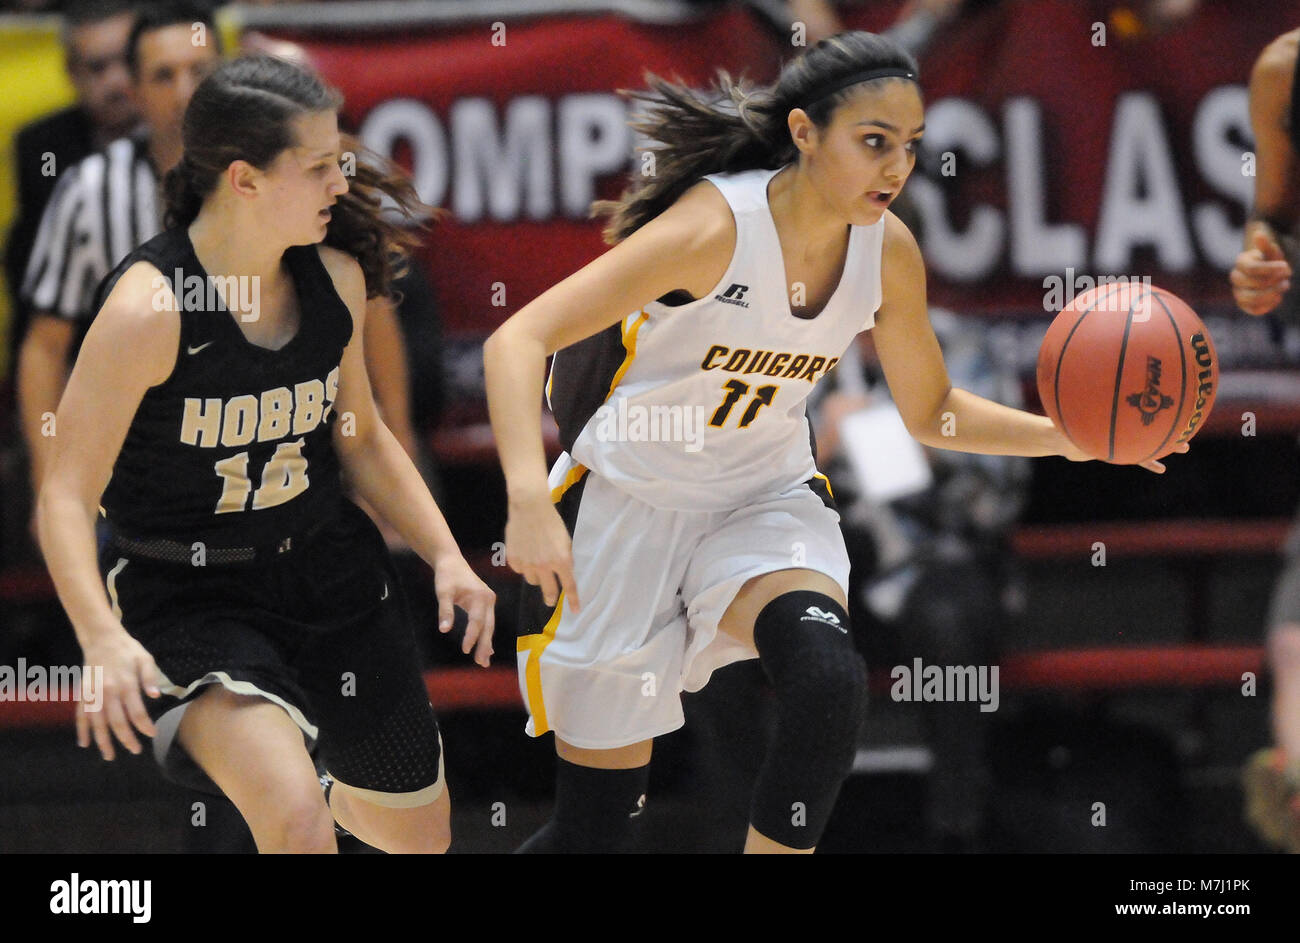 Albuquerque, NM, USA. 10th Mar, 2018. Cibola's #11 Azia Himeur brings the ball down court with Hobbs' #14 MacKenzye Gibson defending her. Saturday, March. 10, 2018. Credit: Jim Thompson/Albuquerque Journal/ZUMA Wire/Alamy Live News Stock Photo